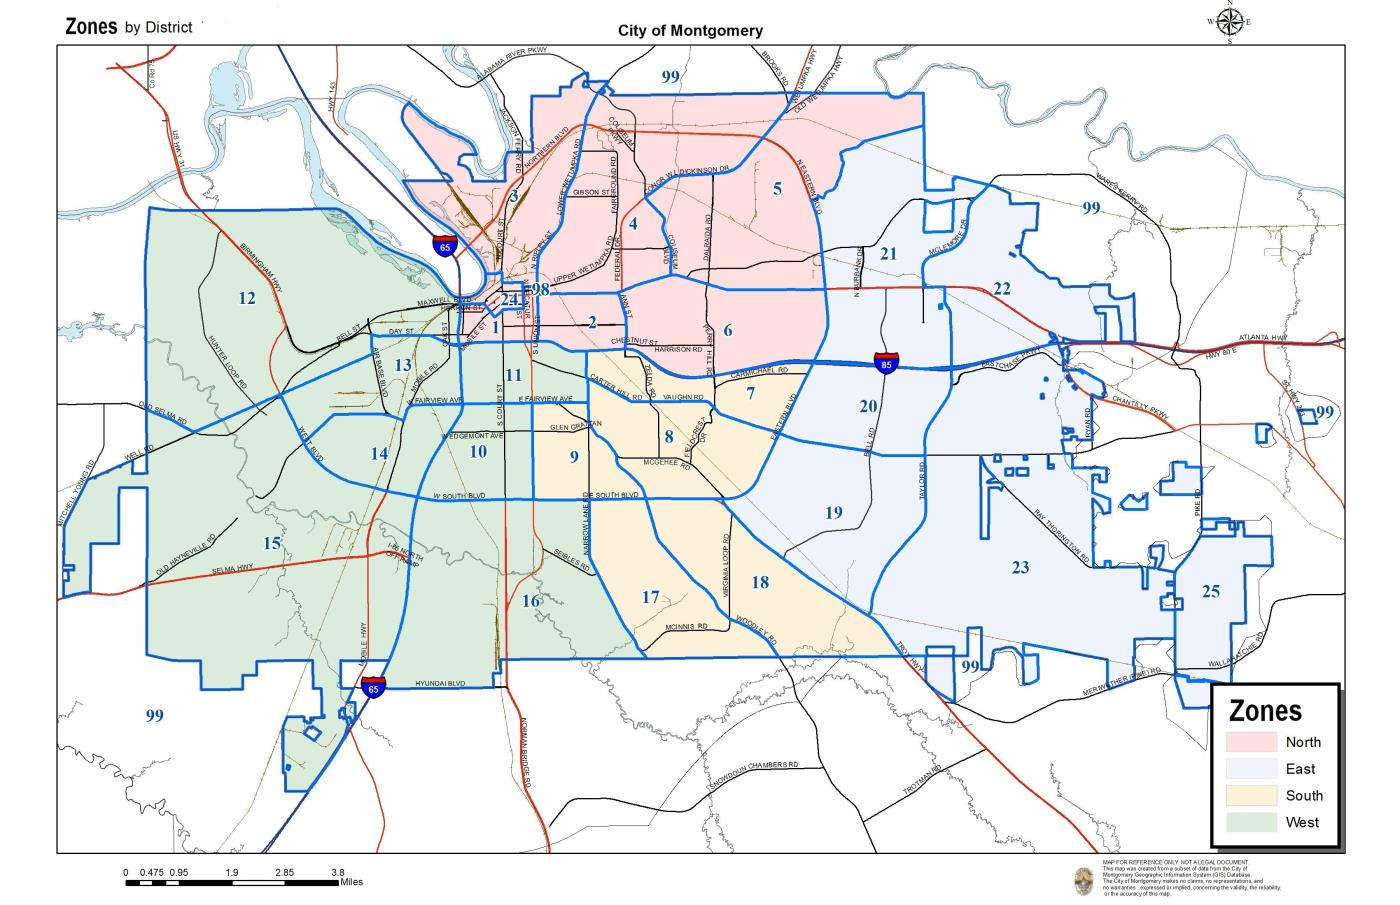 Montgomery Al Map Find Your Zone | City of Montgomery, Alabama Montgomery Al Map